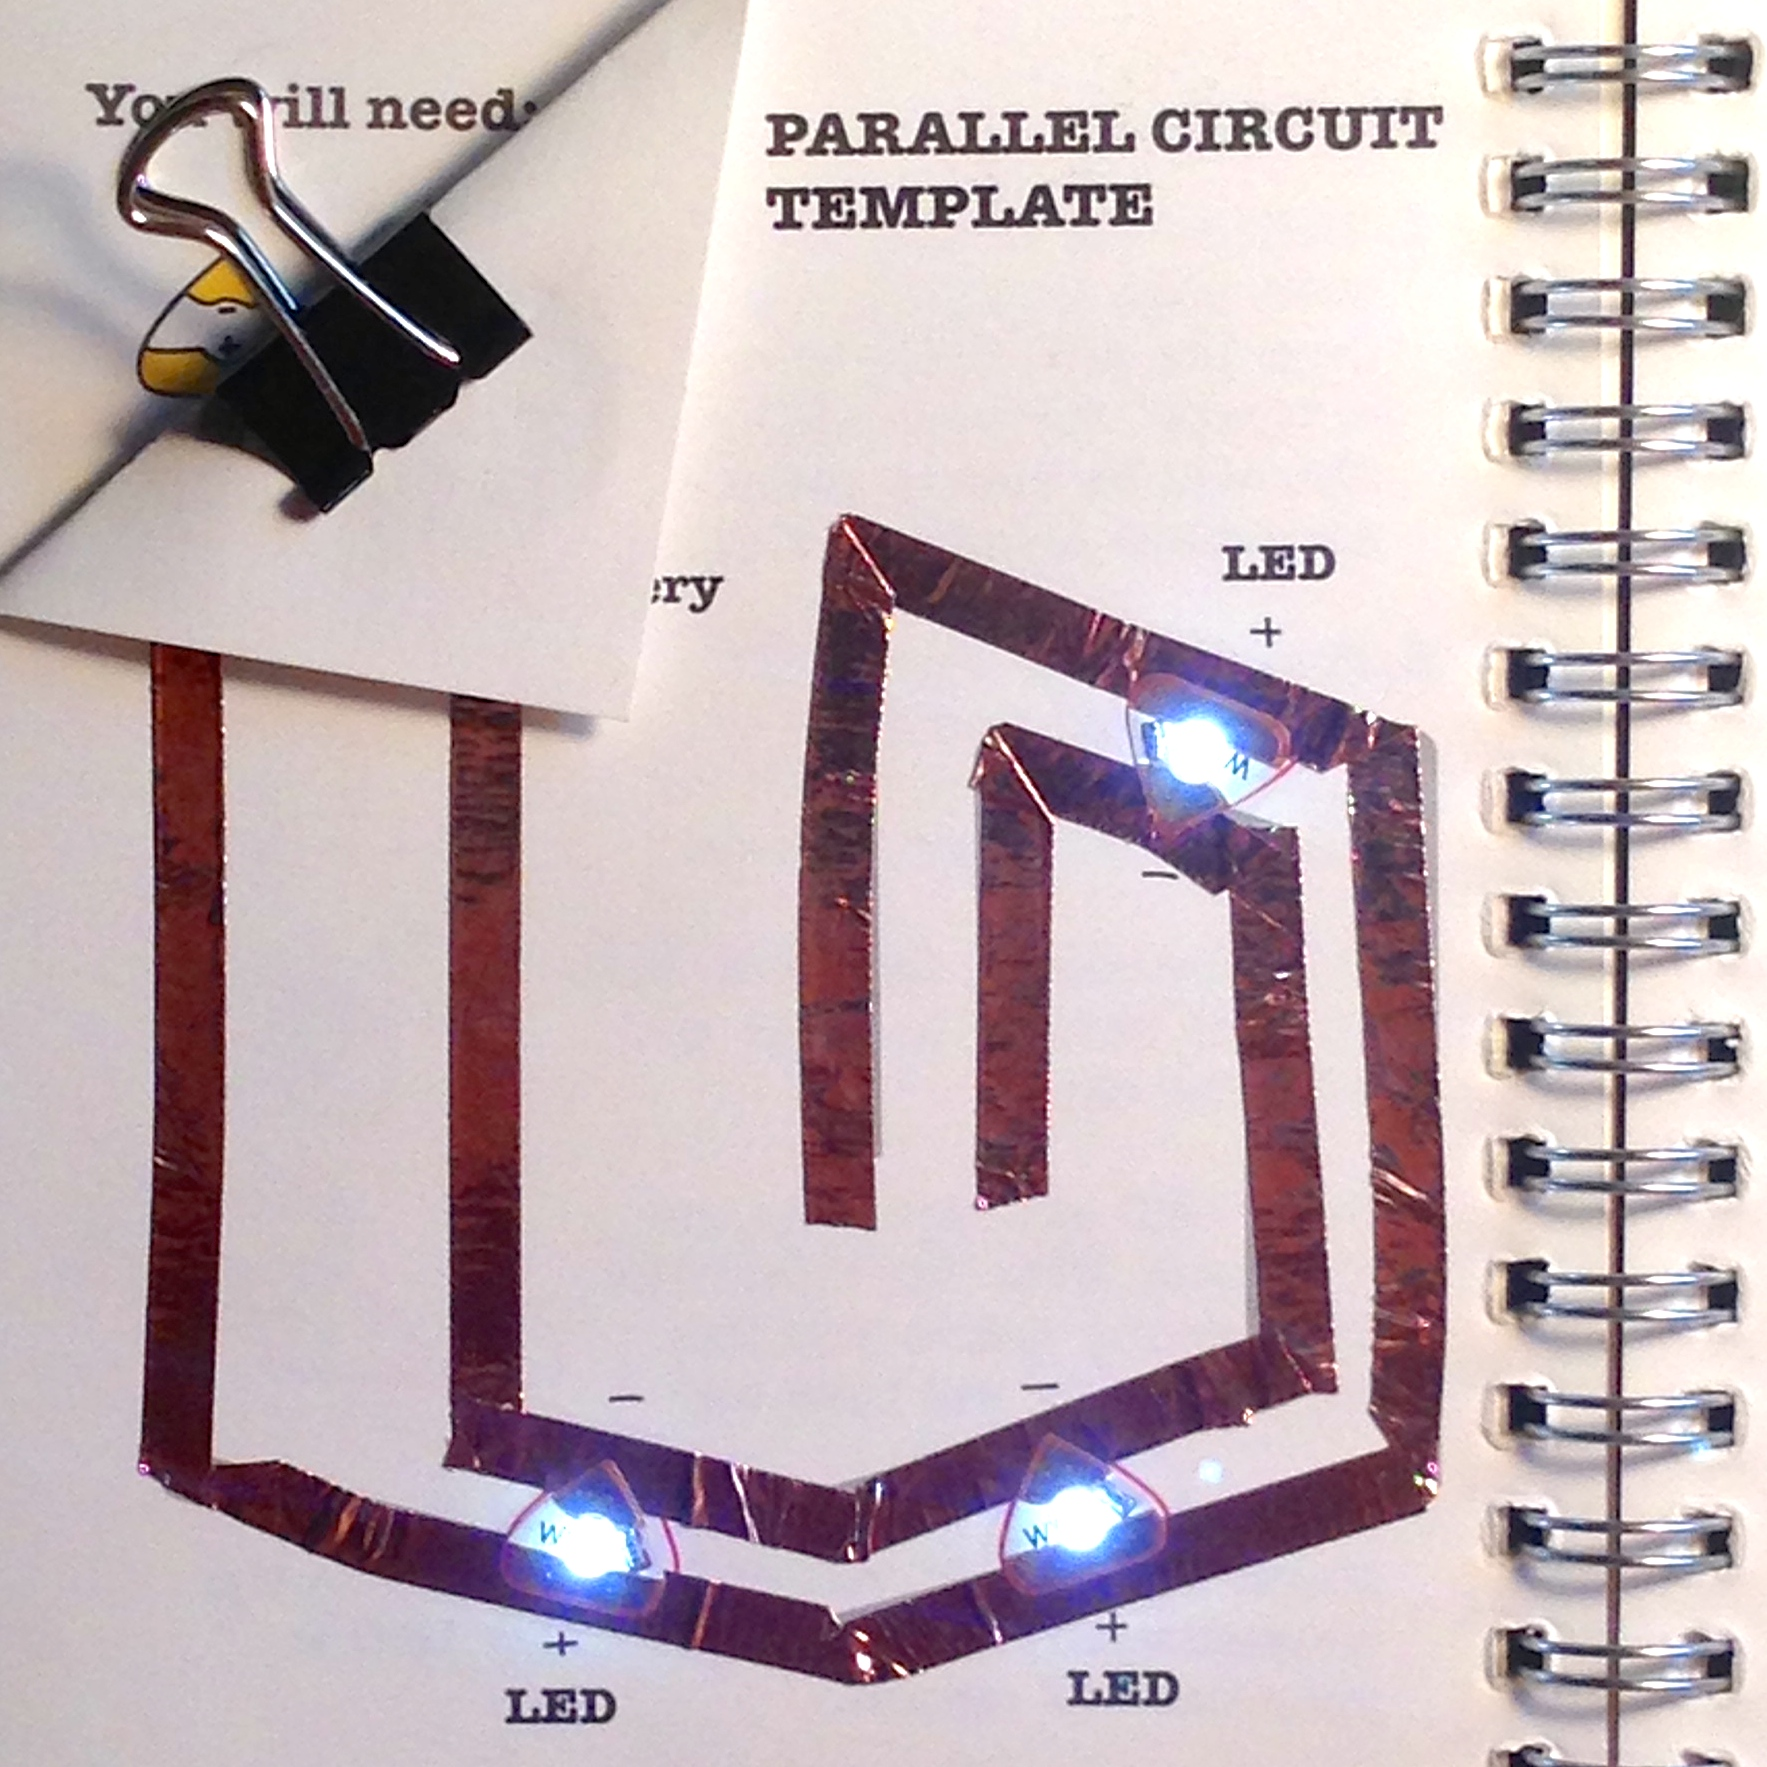 Learn Chibitronics Parallel Circuit Diagram Tutorial